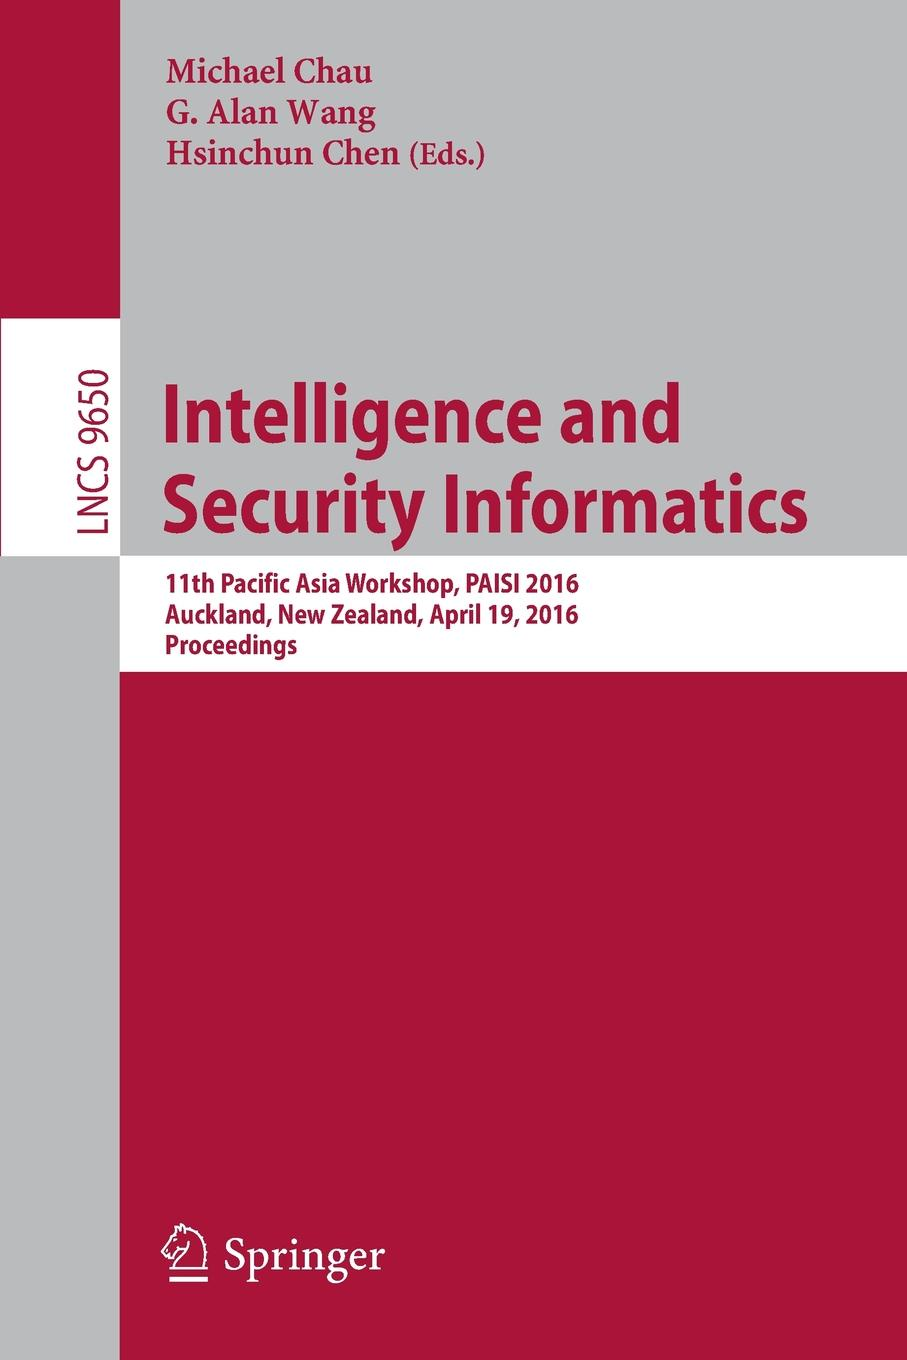 Intelligence and Security Informatics. 11th Pacific Asia Workshop. PAISI 2016, Auckland, New Zealand, April 19, 2016, Proceedings 2016 new